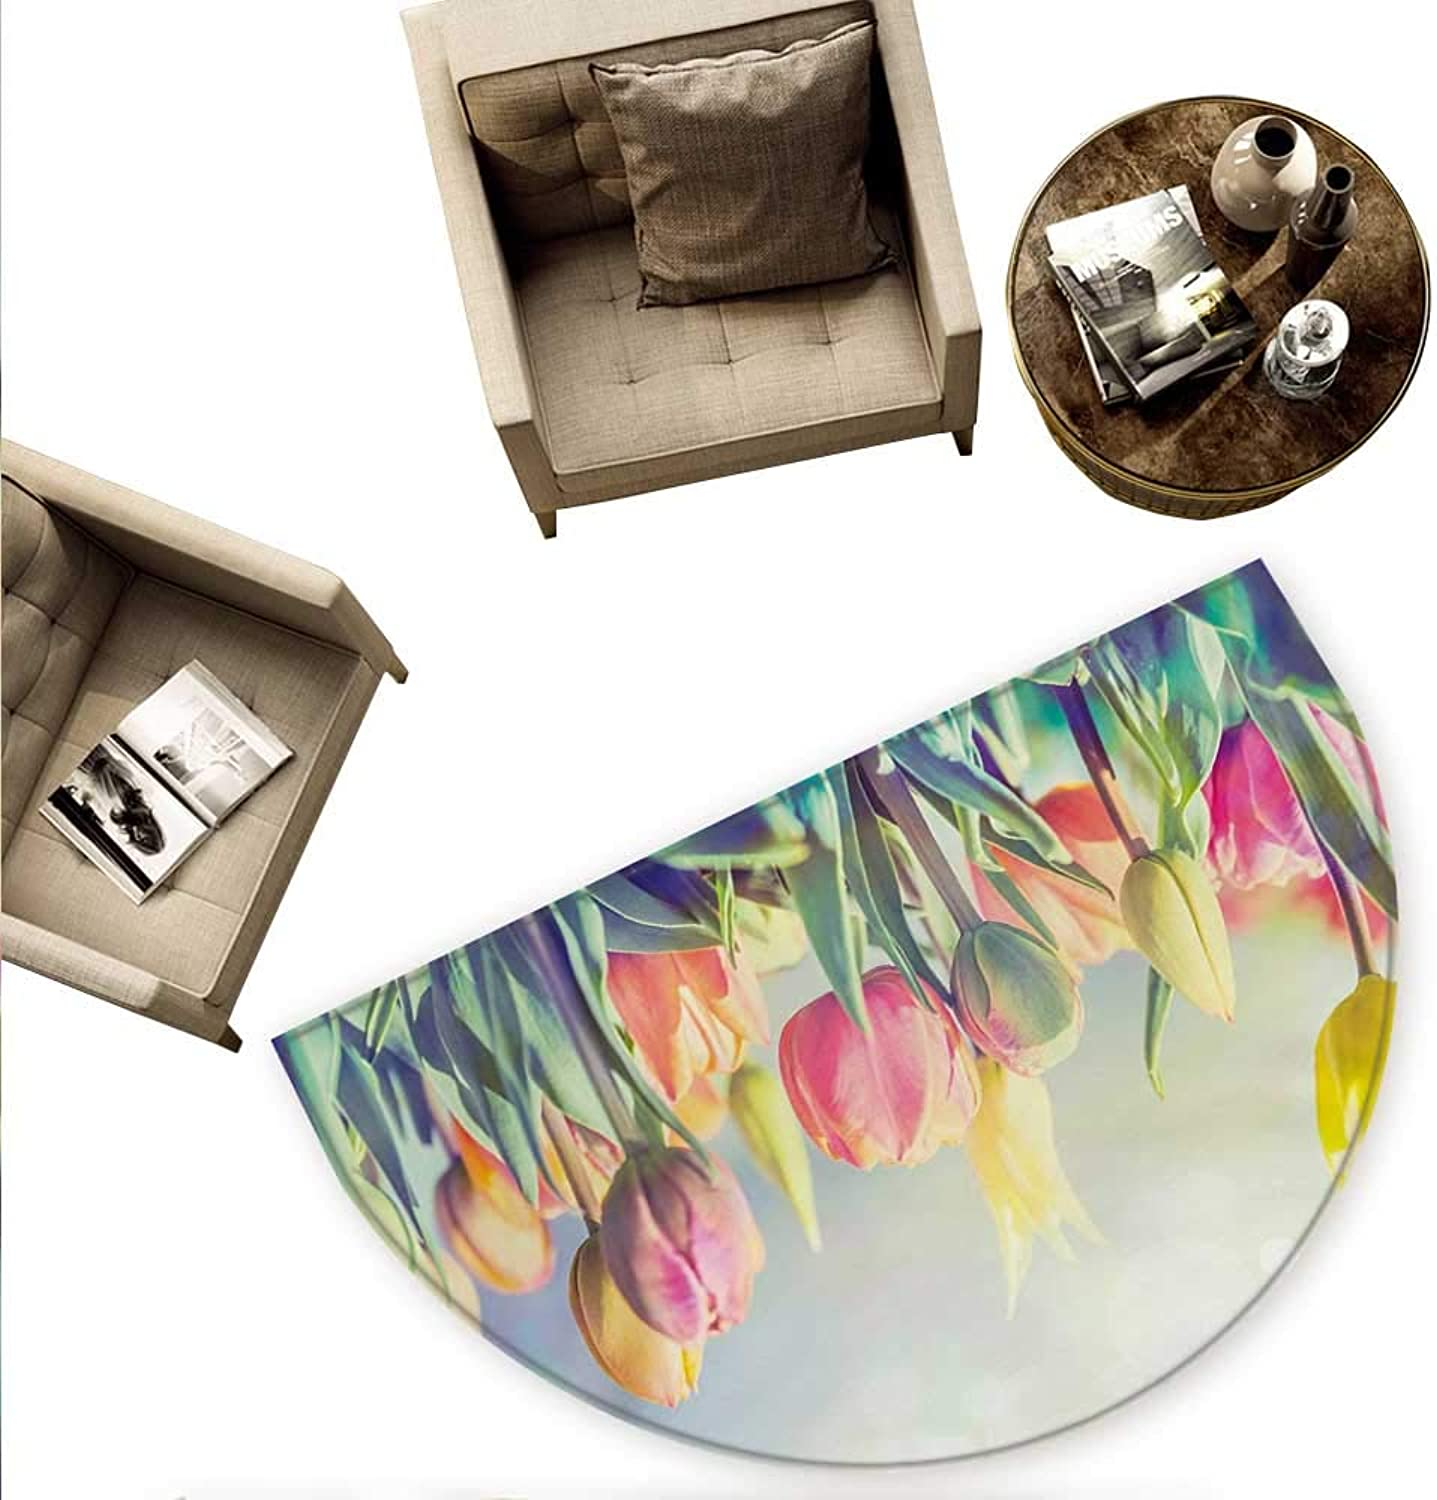 Pastel Semicircular Cushion Tulips Flower Bed in Park Serene Landscape Happiness Fresh Spring Environment Image Entry Door Mat H 78.7  xD 118.1  Multicolor